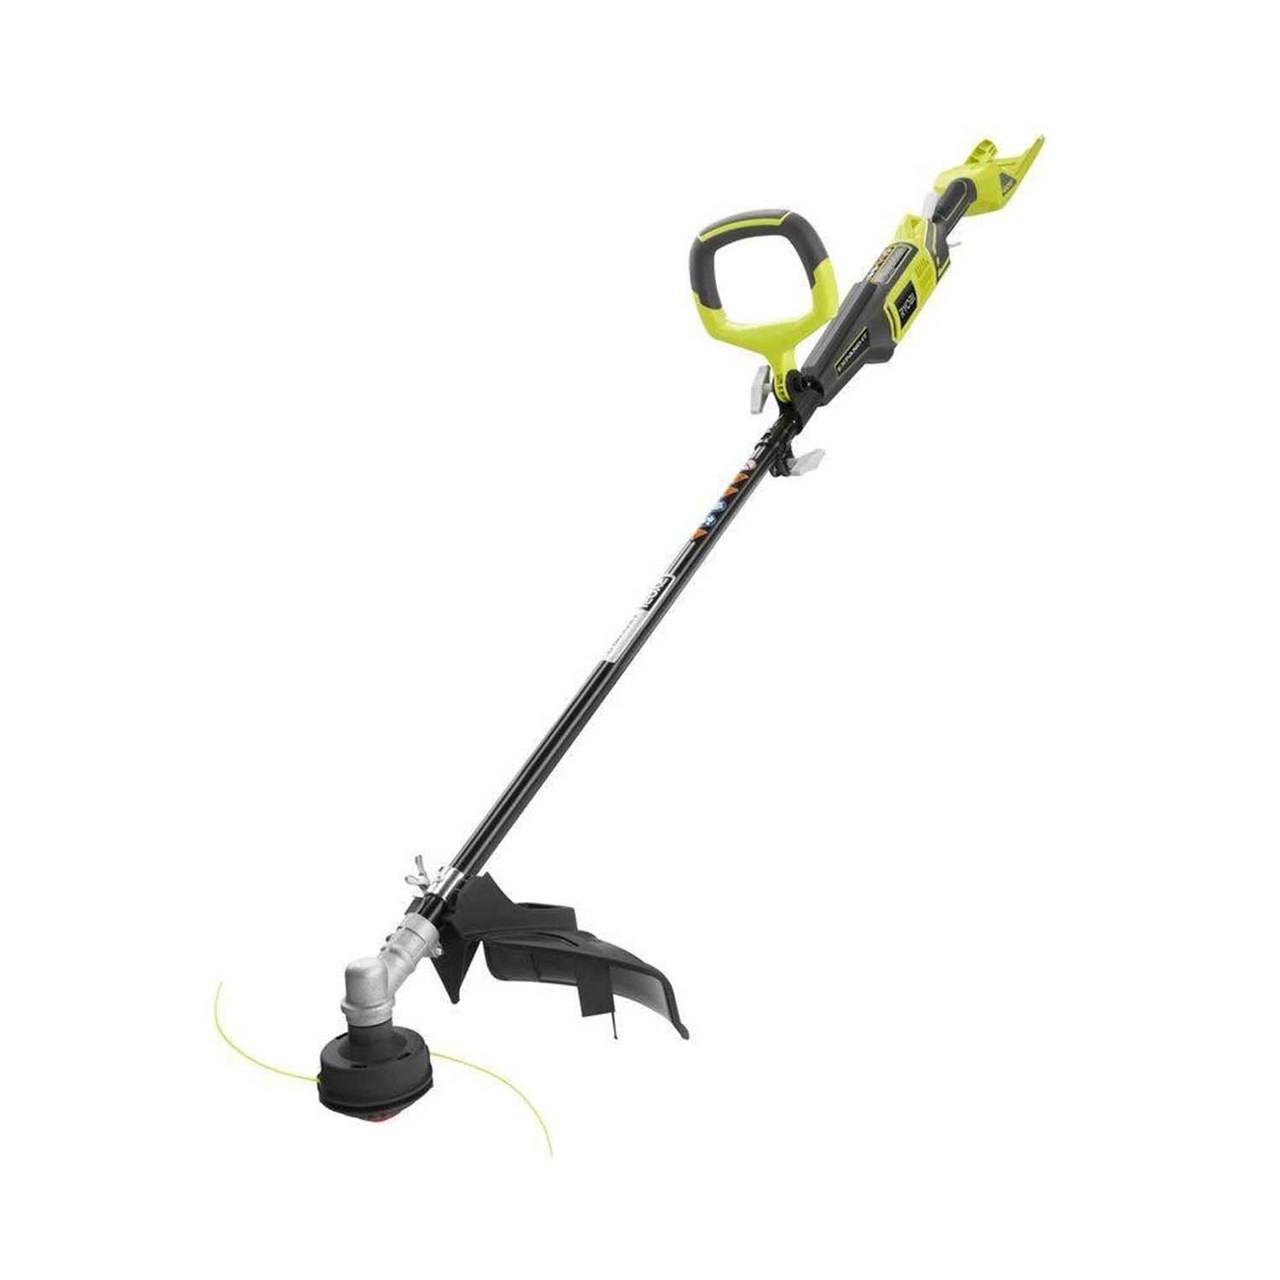 Ryobi Reconditioned RY40002 40V Expand-It Power Head & RY15523A Expand-It  Trimmer